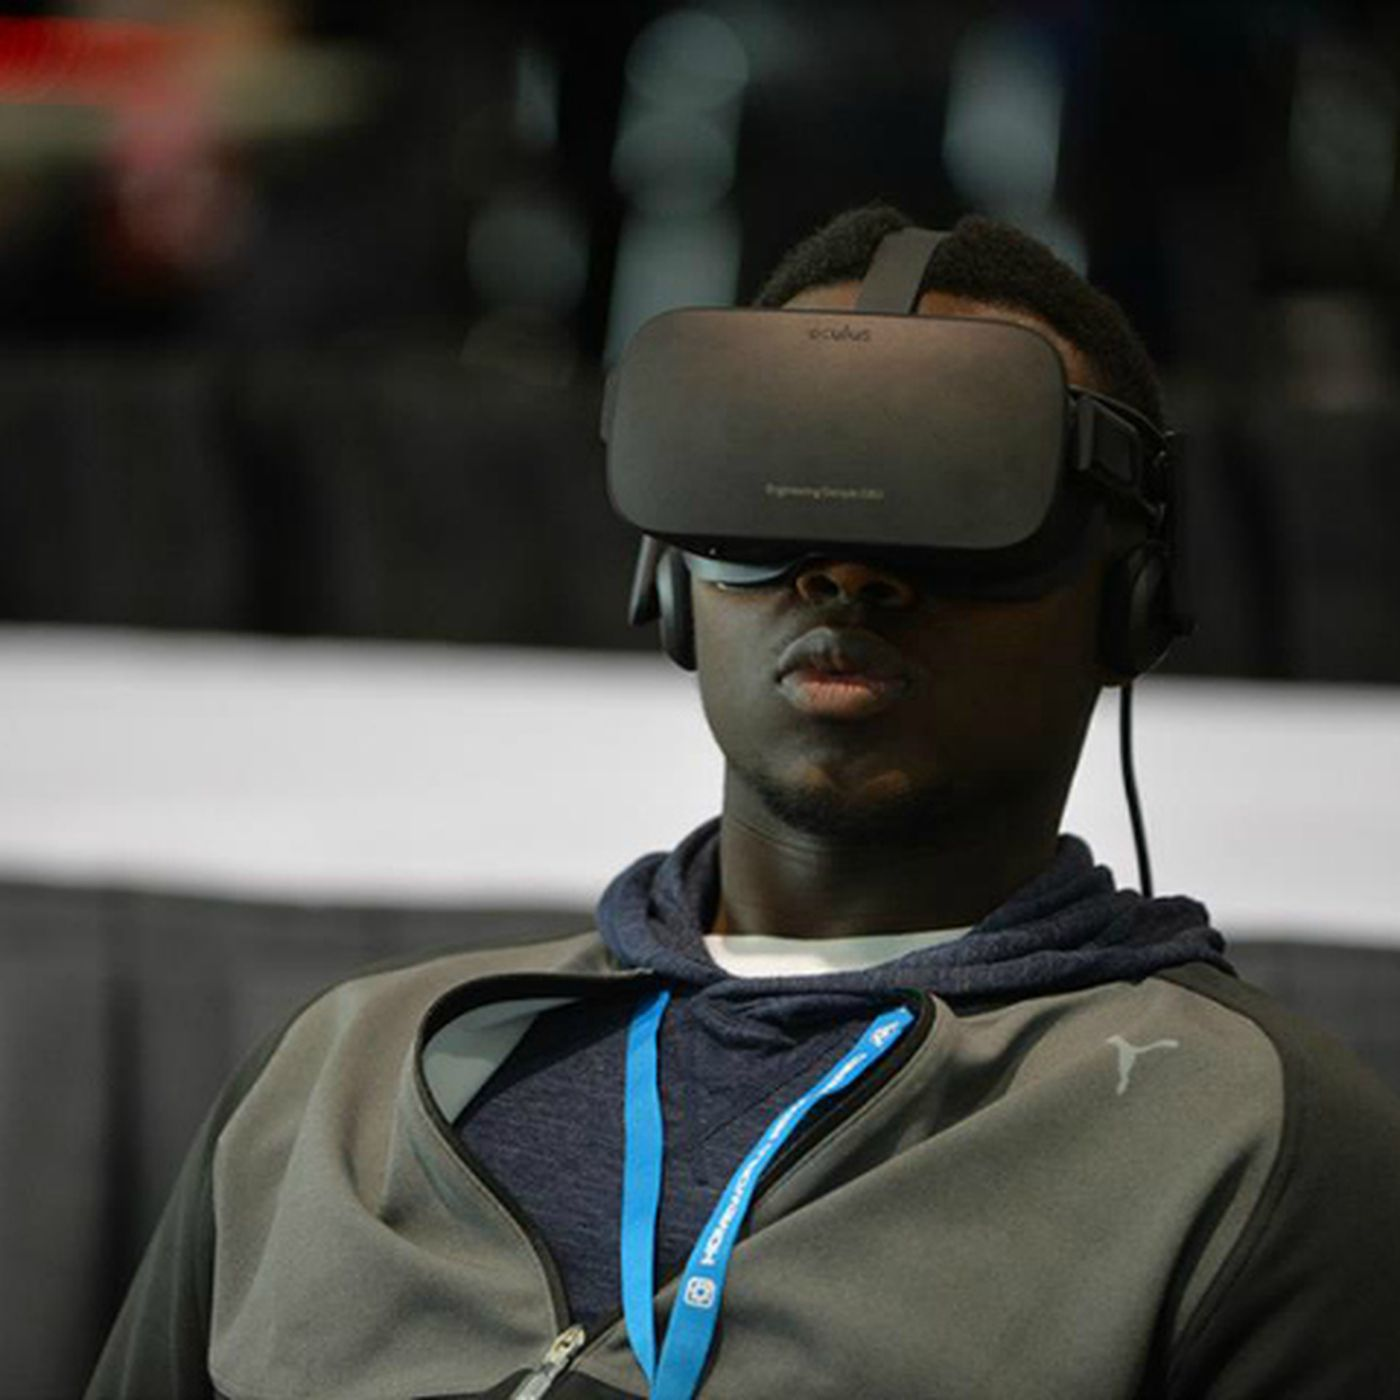 What Facebook (and many, many others) get wrong about VR - Vox